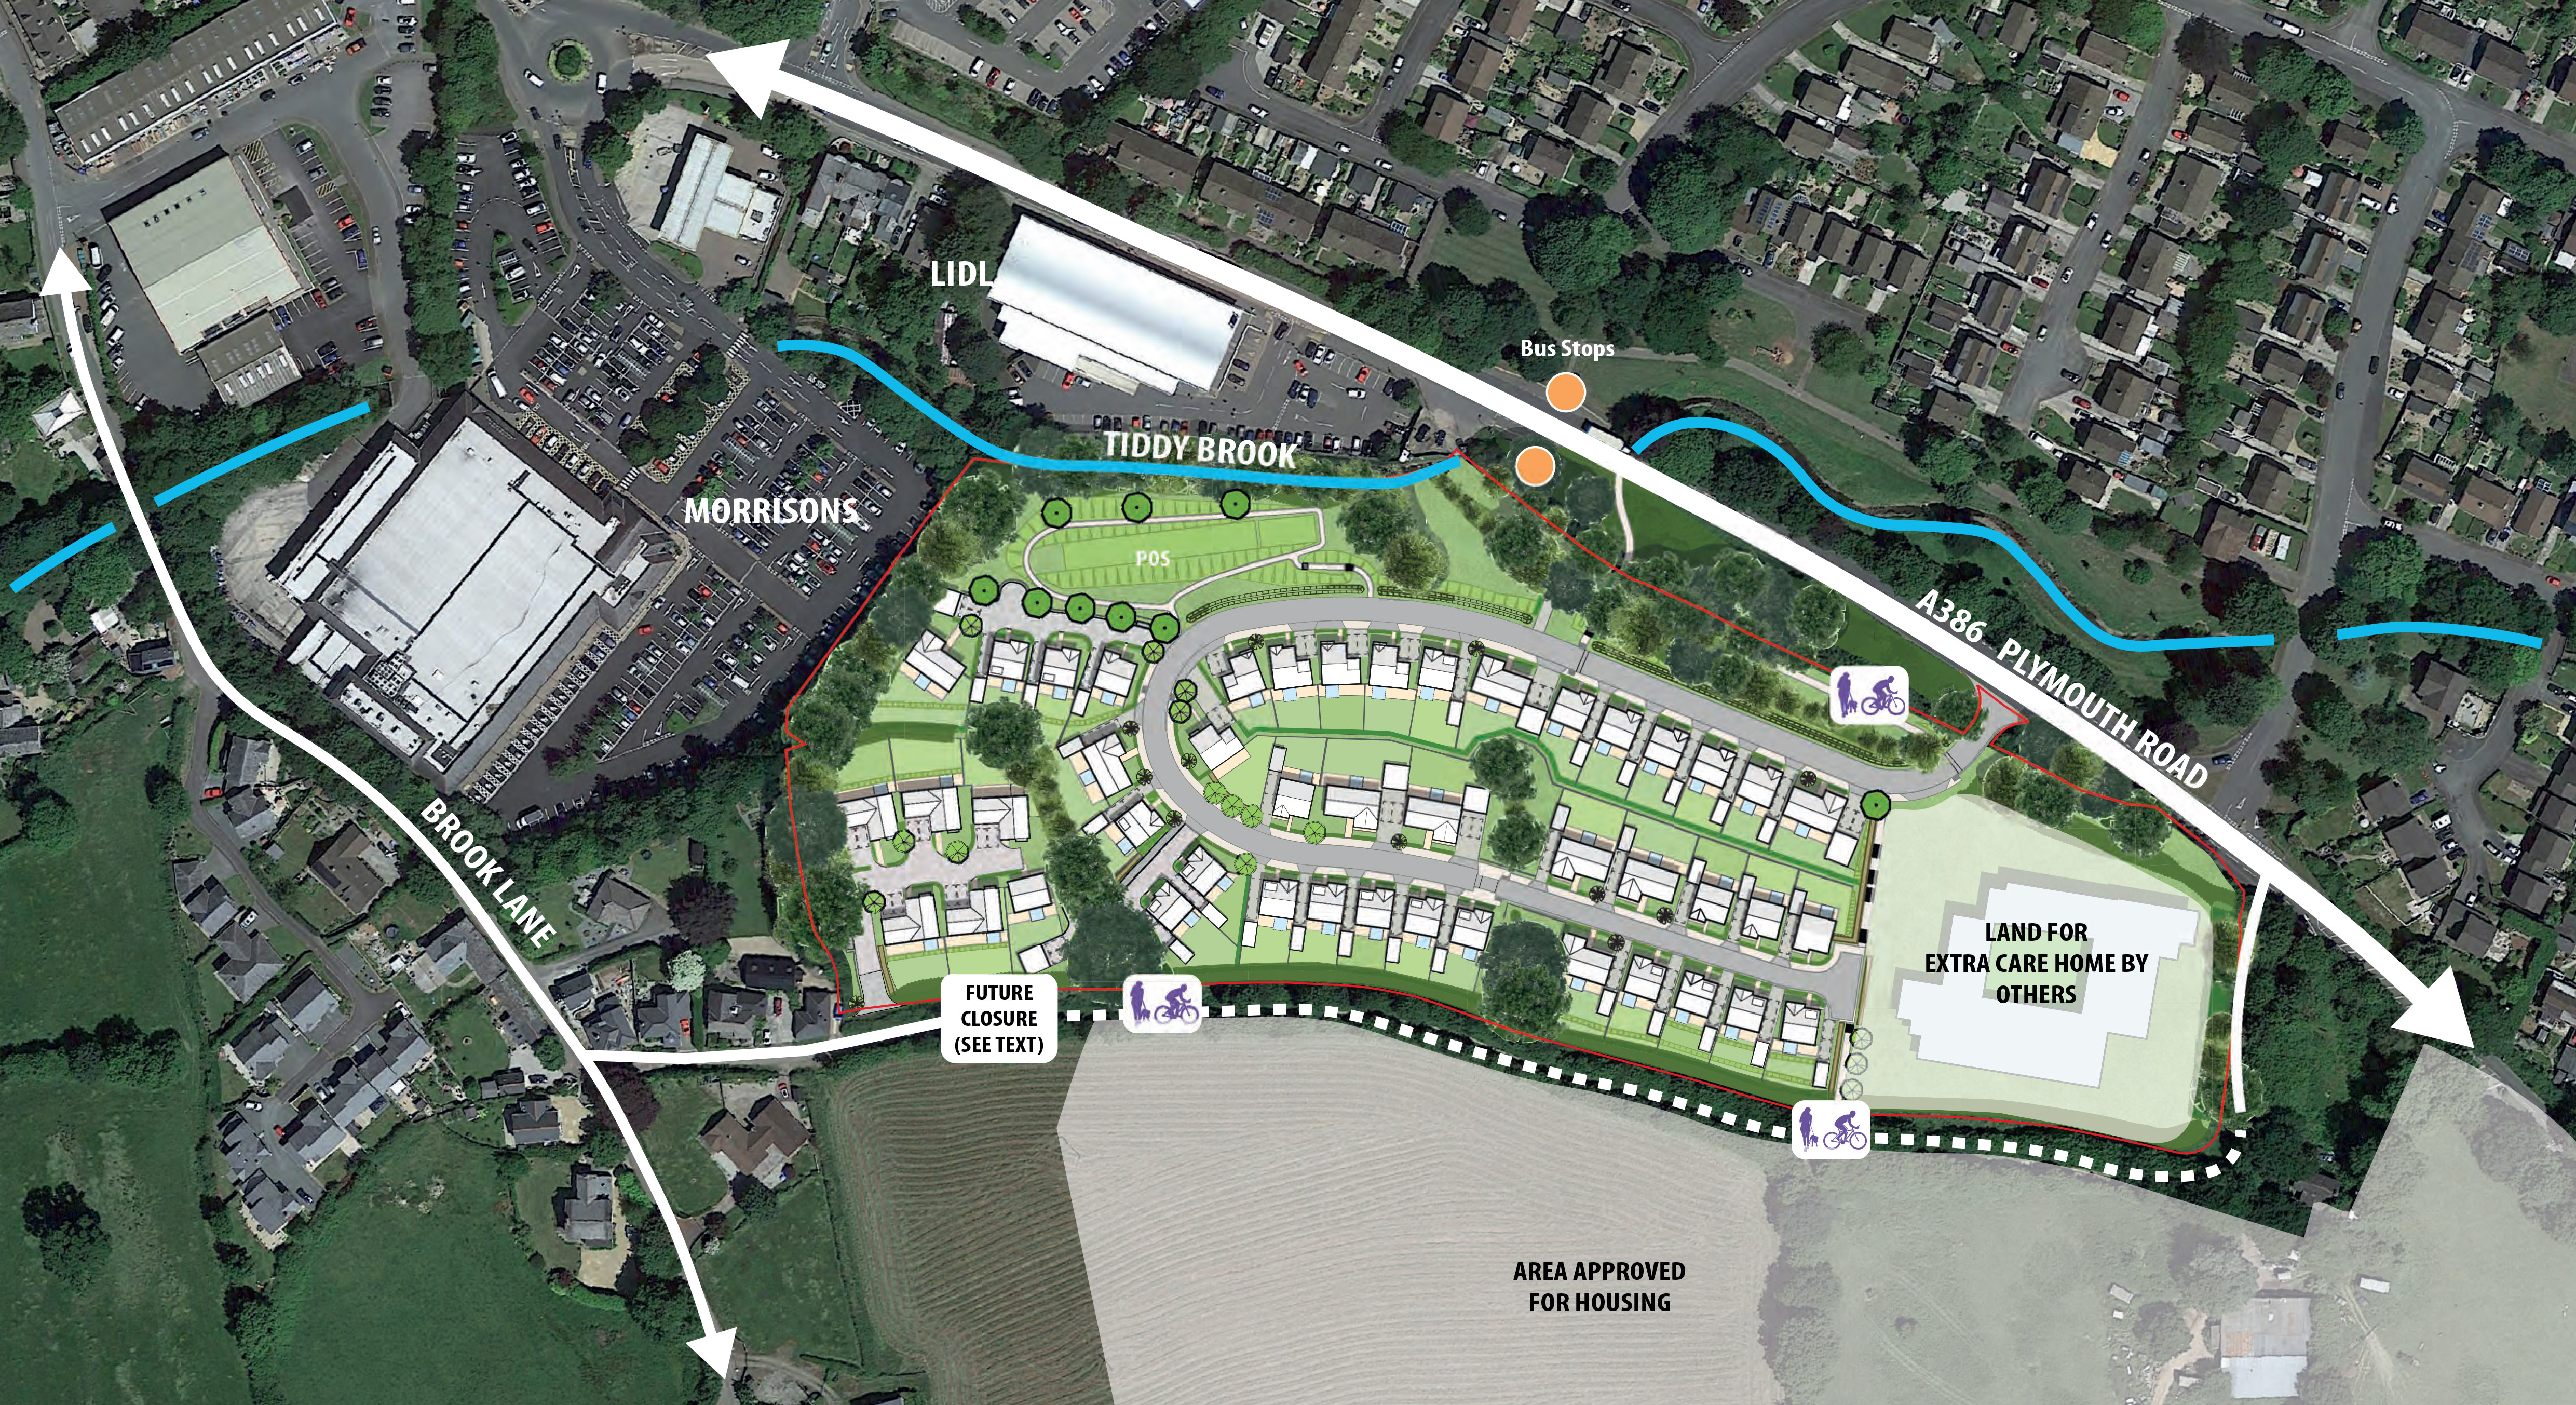 Proposals for new homes in Tavistock submitted; extra care facility also part of plans